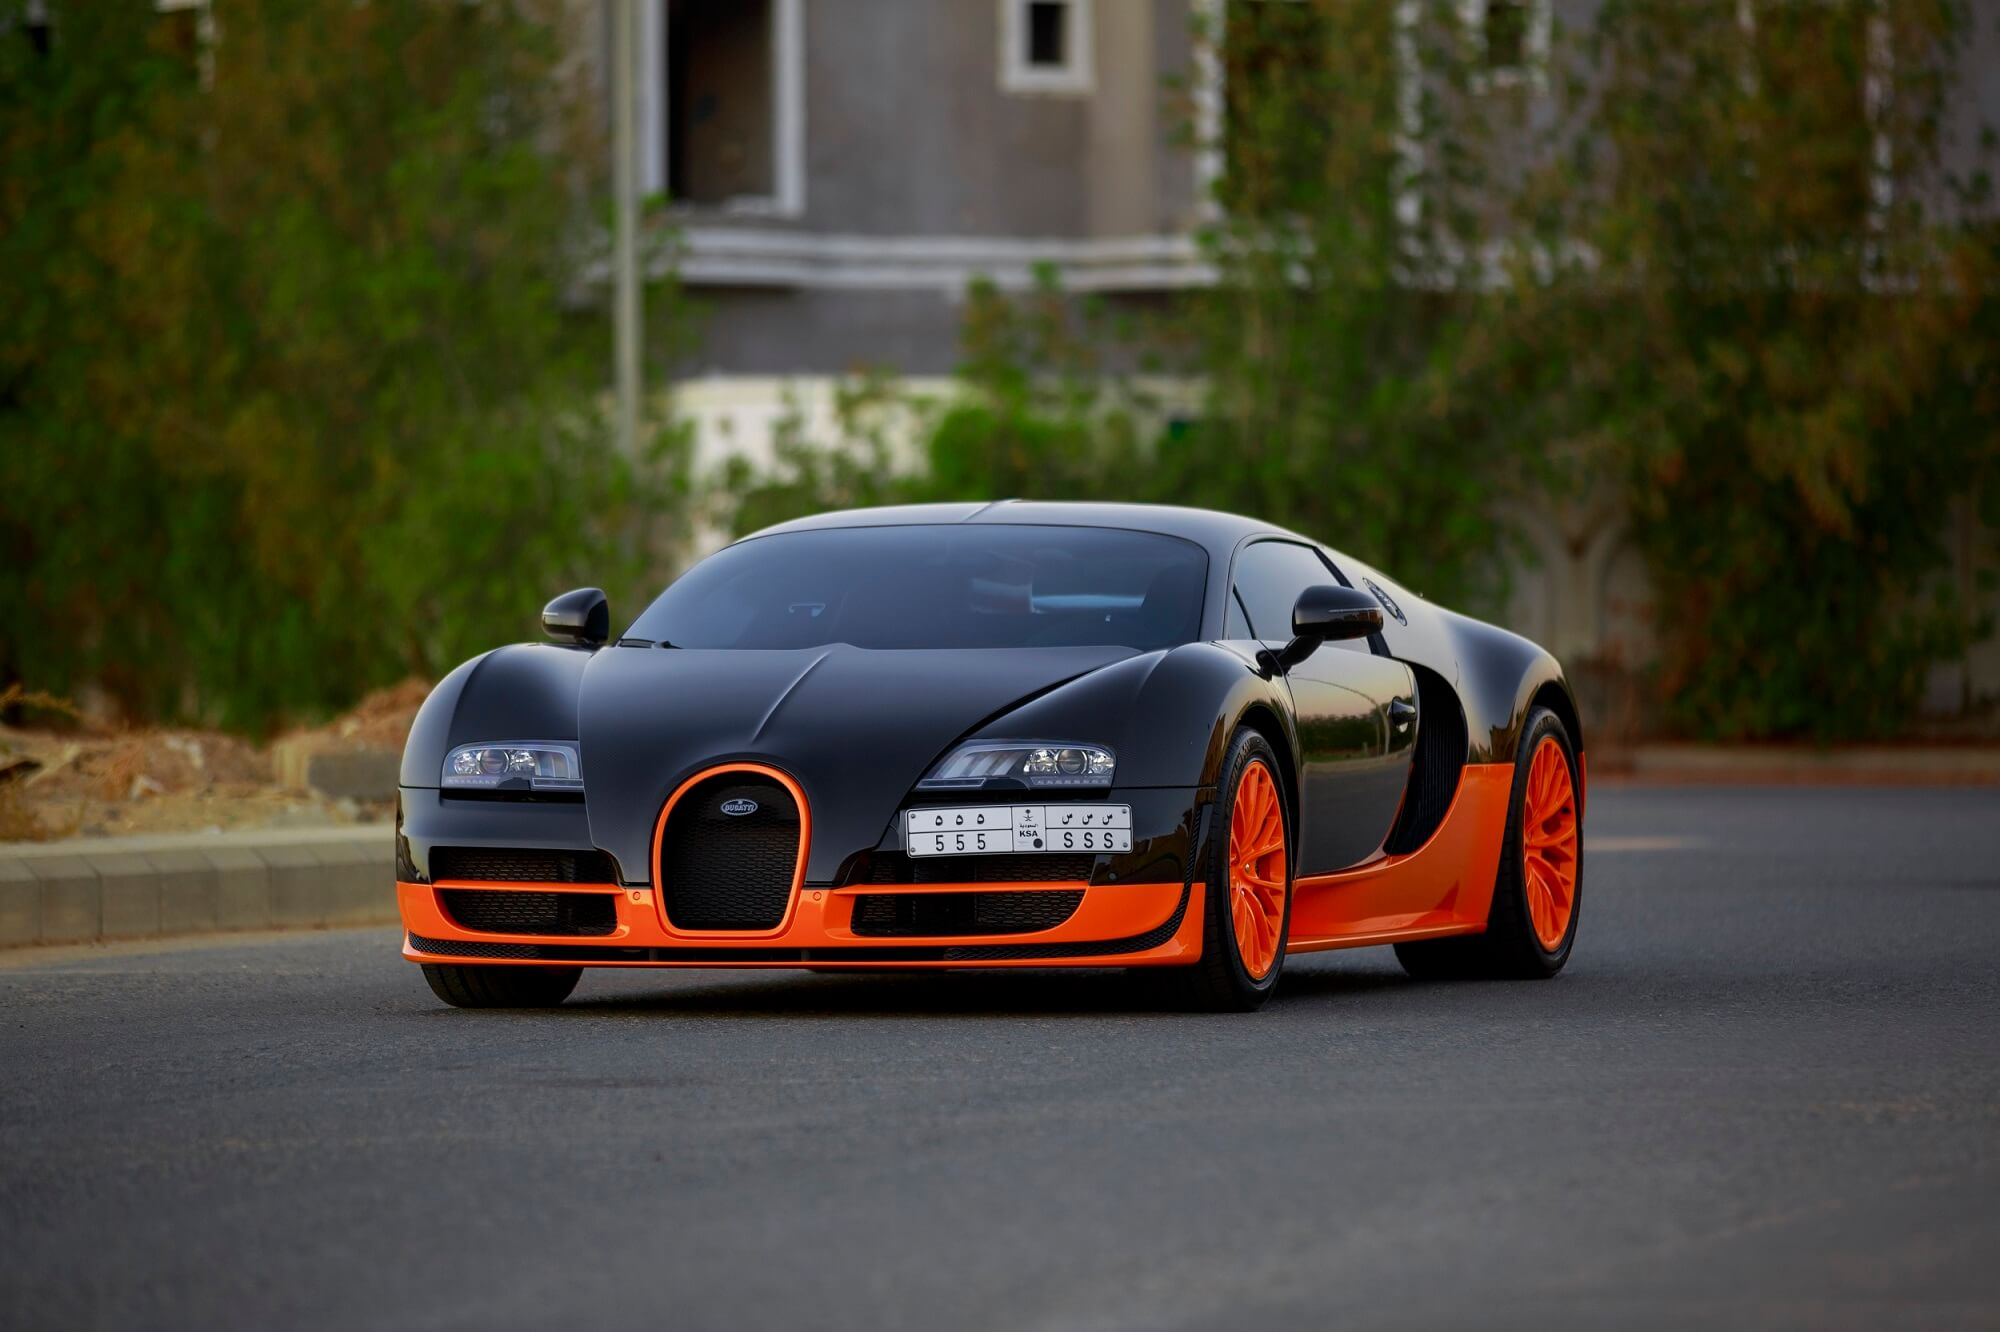 exclusive bugatti veyron super sport world record edition 1of5 in saudi arabia cars247